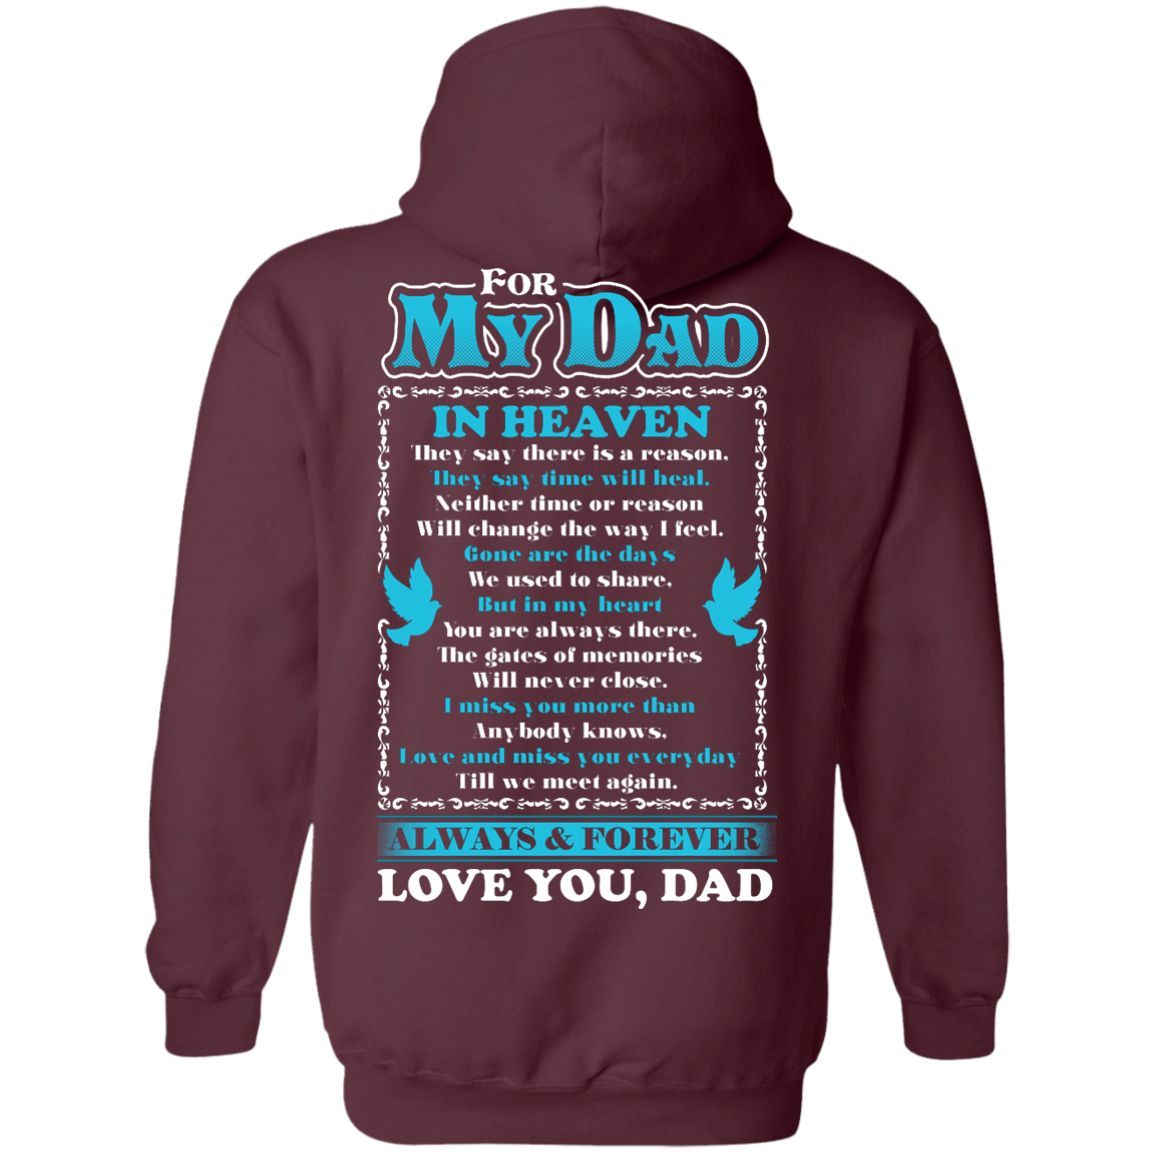 For My Dad Pullover Hoodie 8 oz